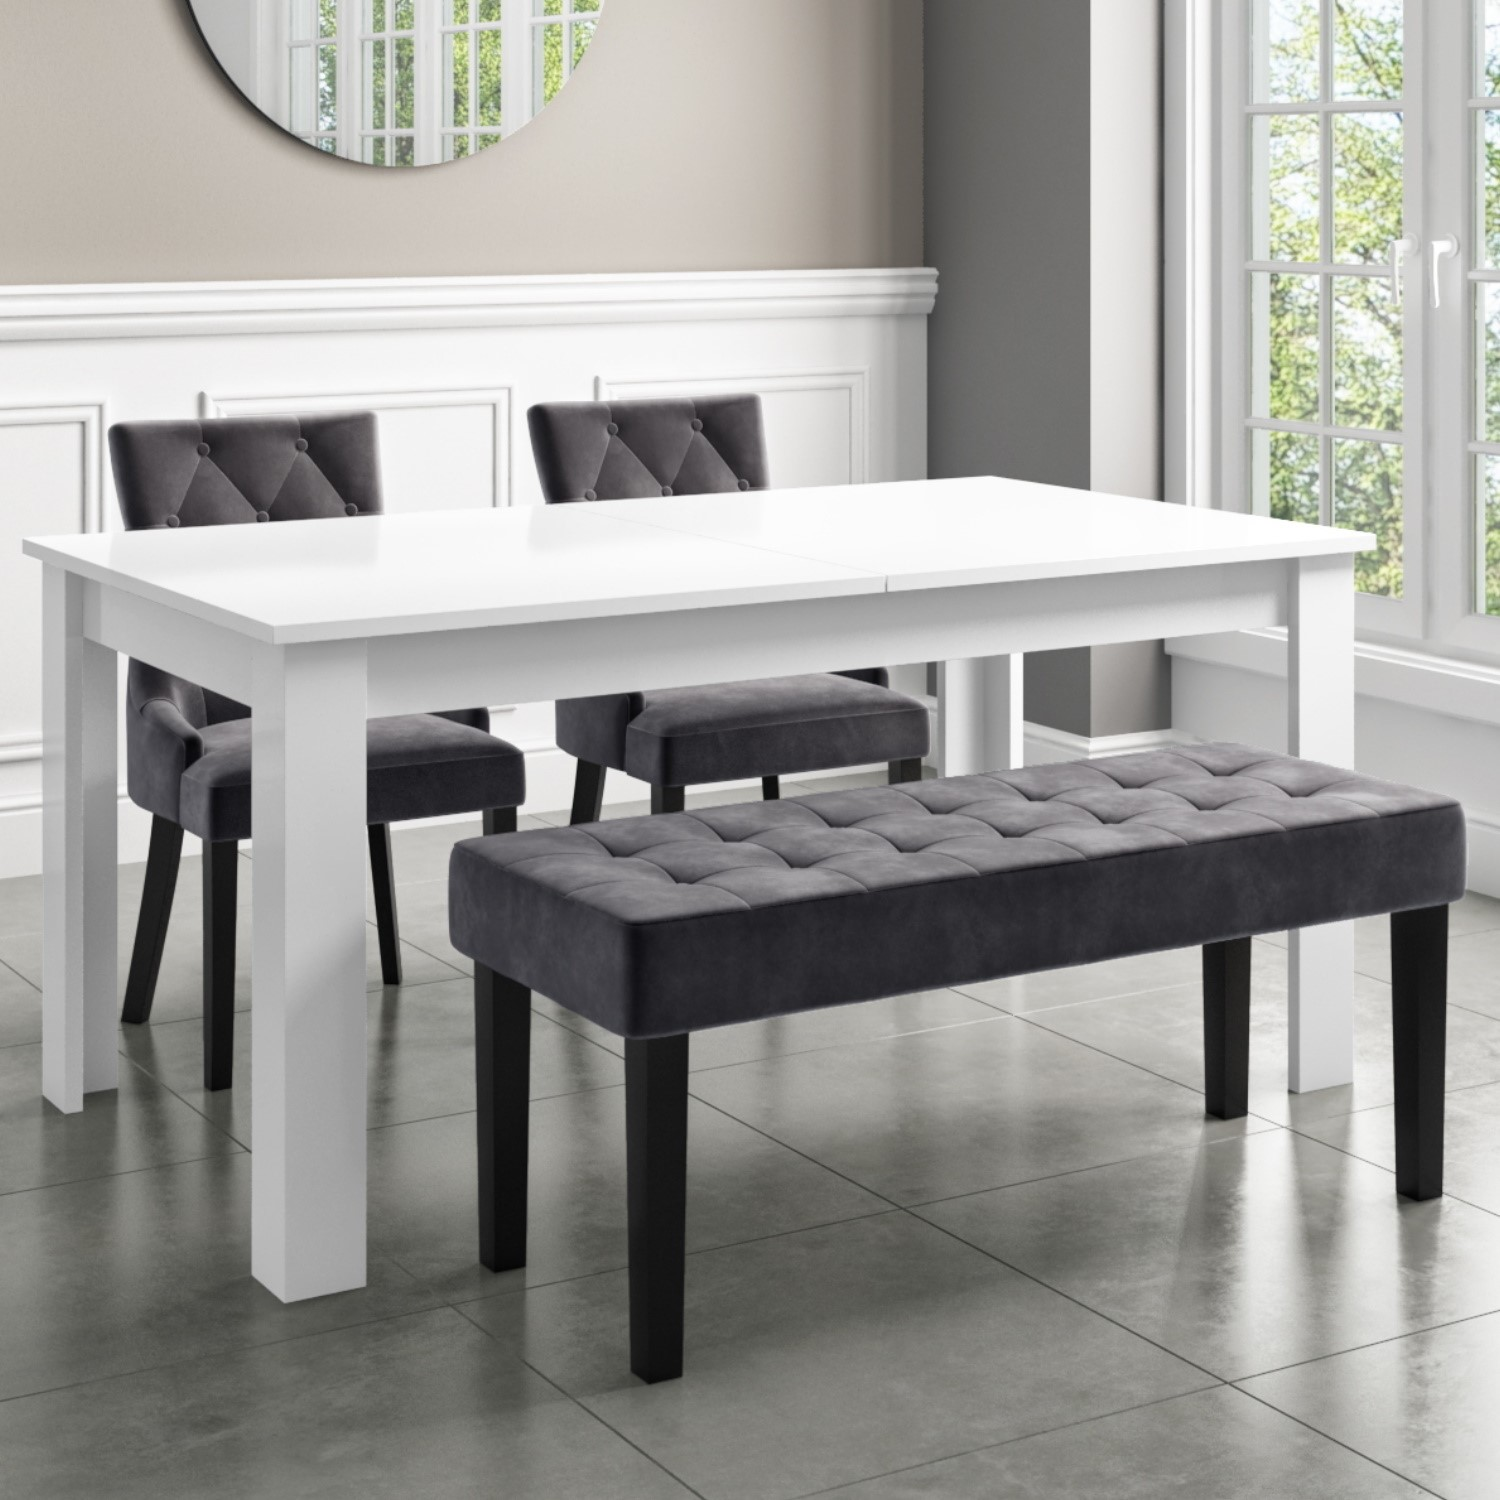 Extendable Dining Table In White High Gloss With 2 Grey Velvet Chairs 1 Bench Vivienne Kaylee Furniture123